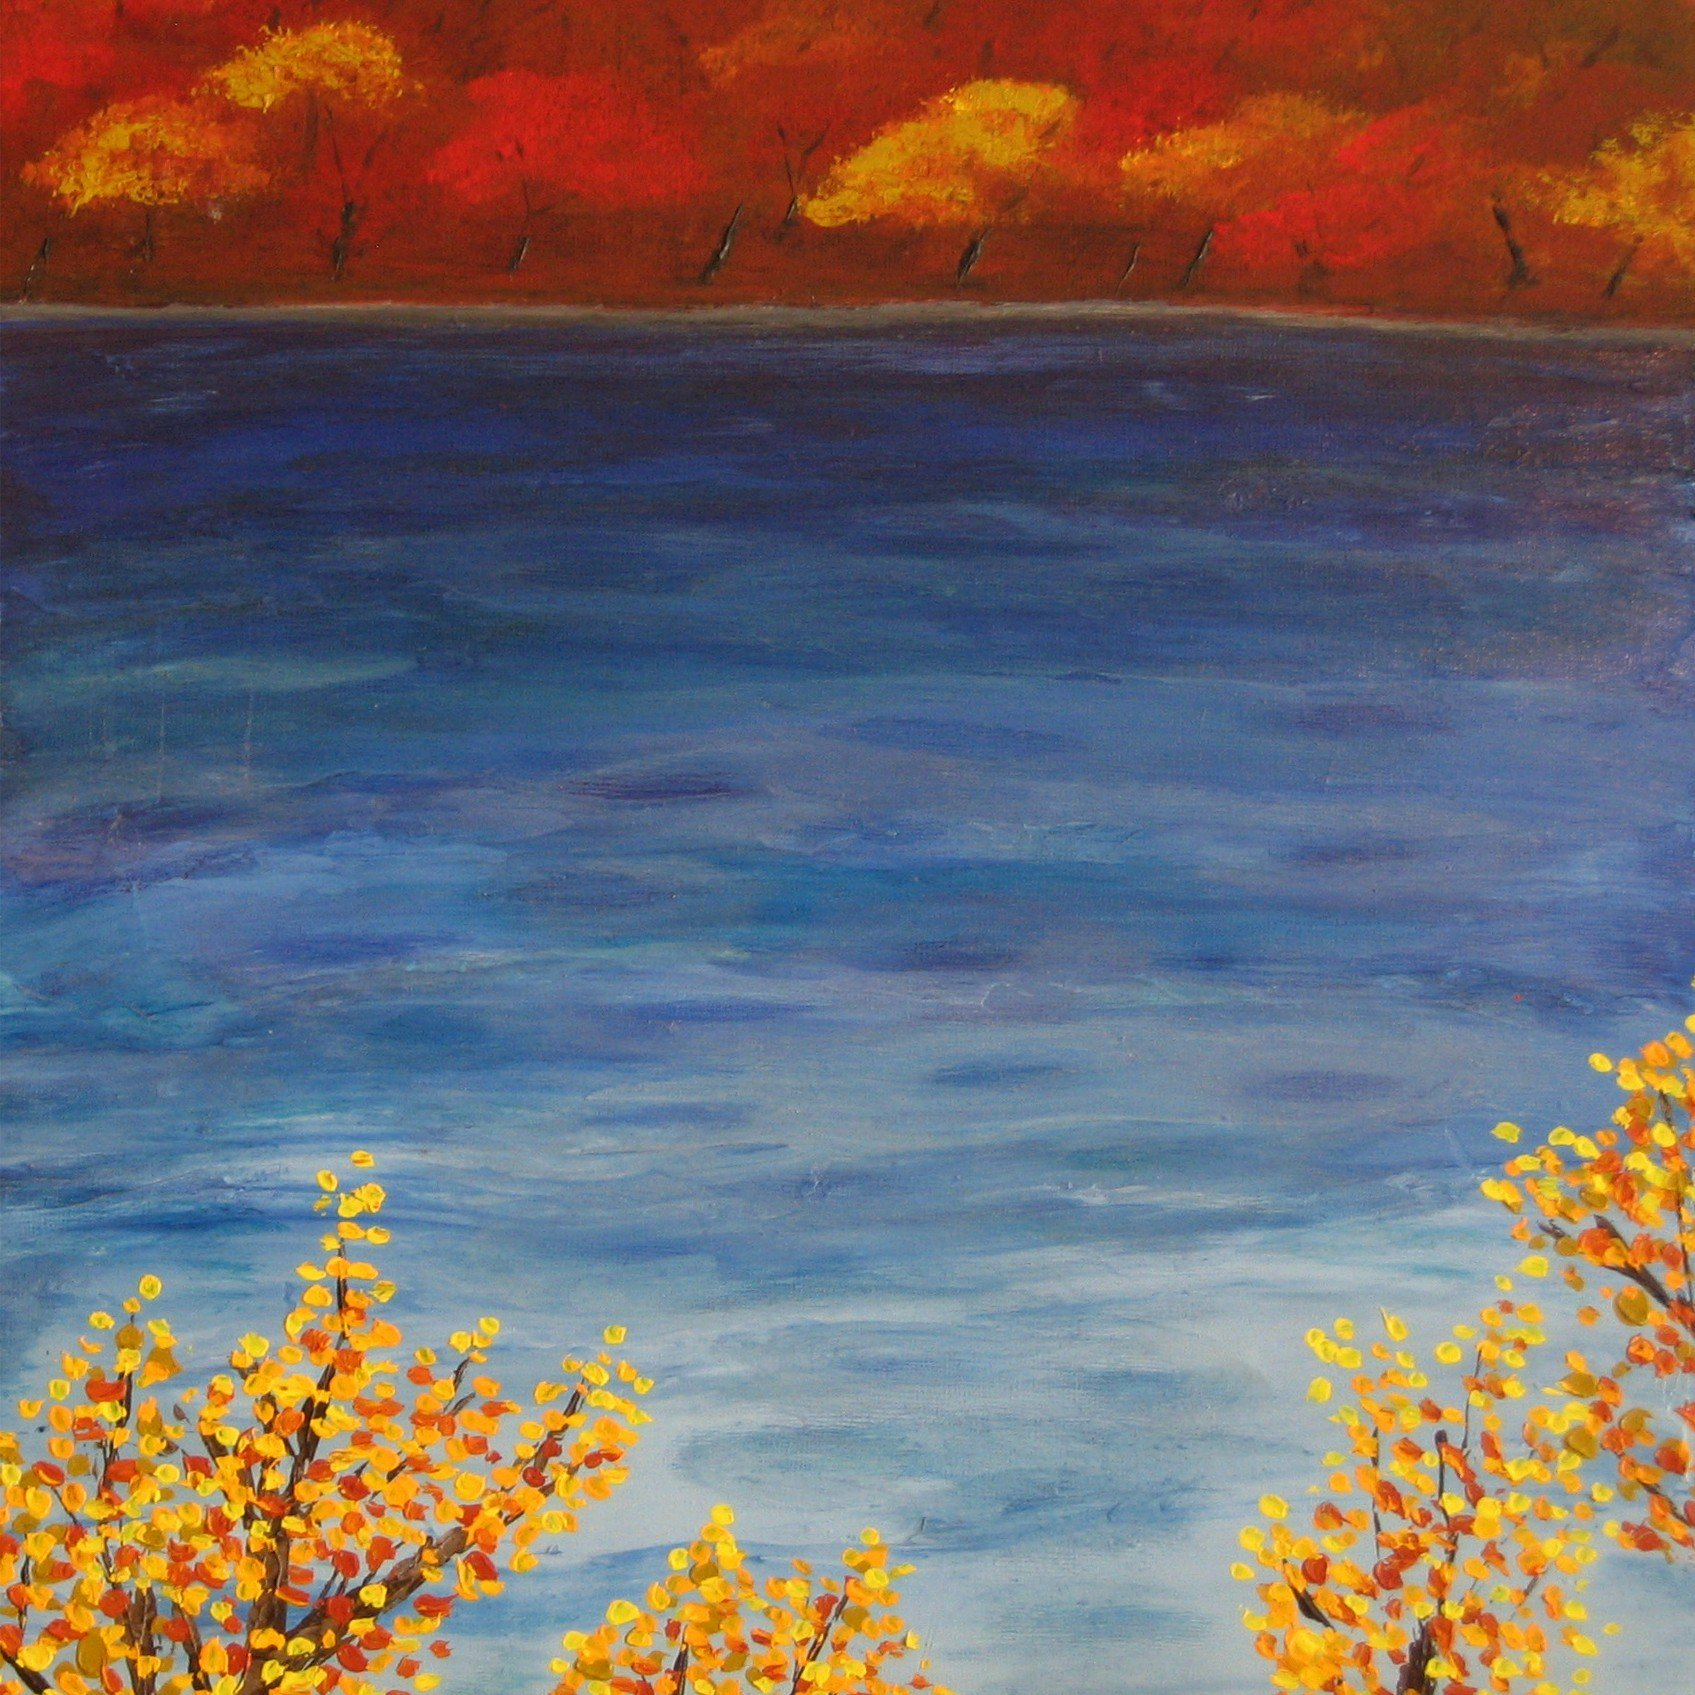 Water in Autumn Painting